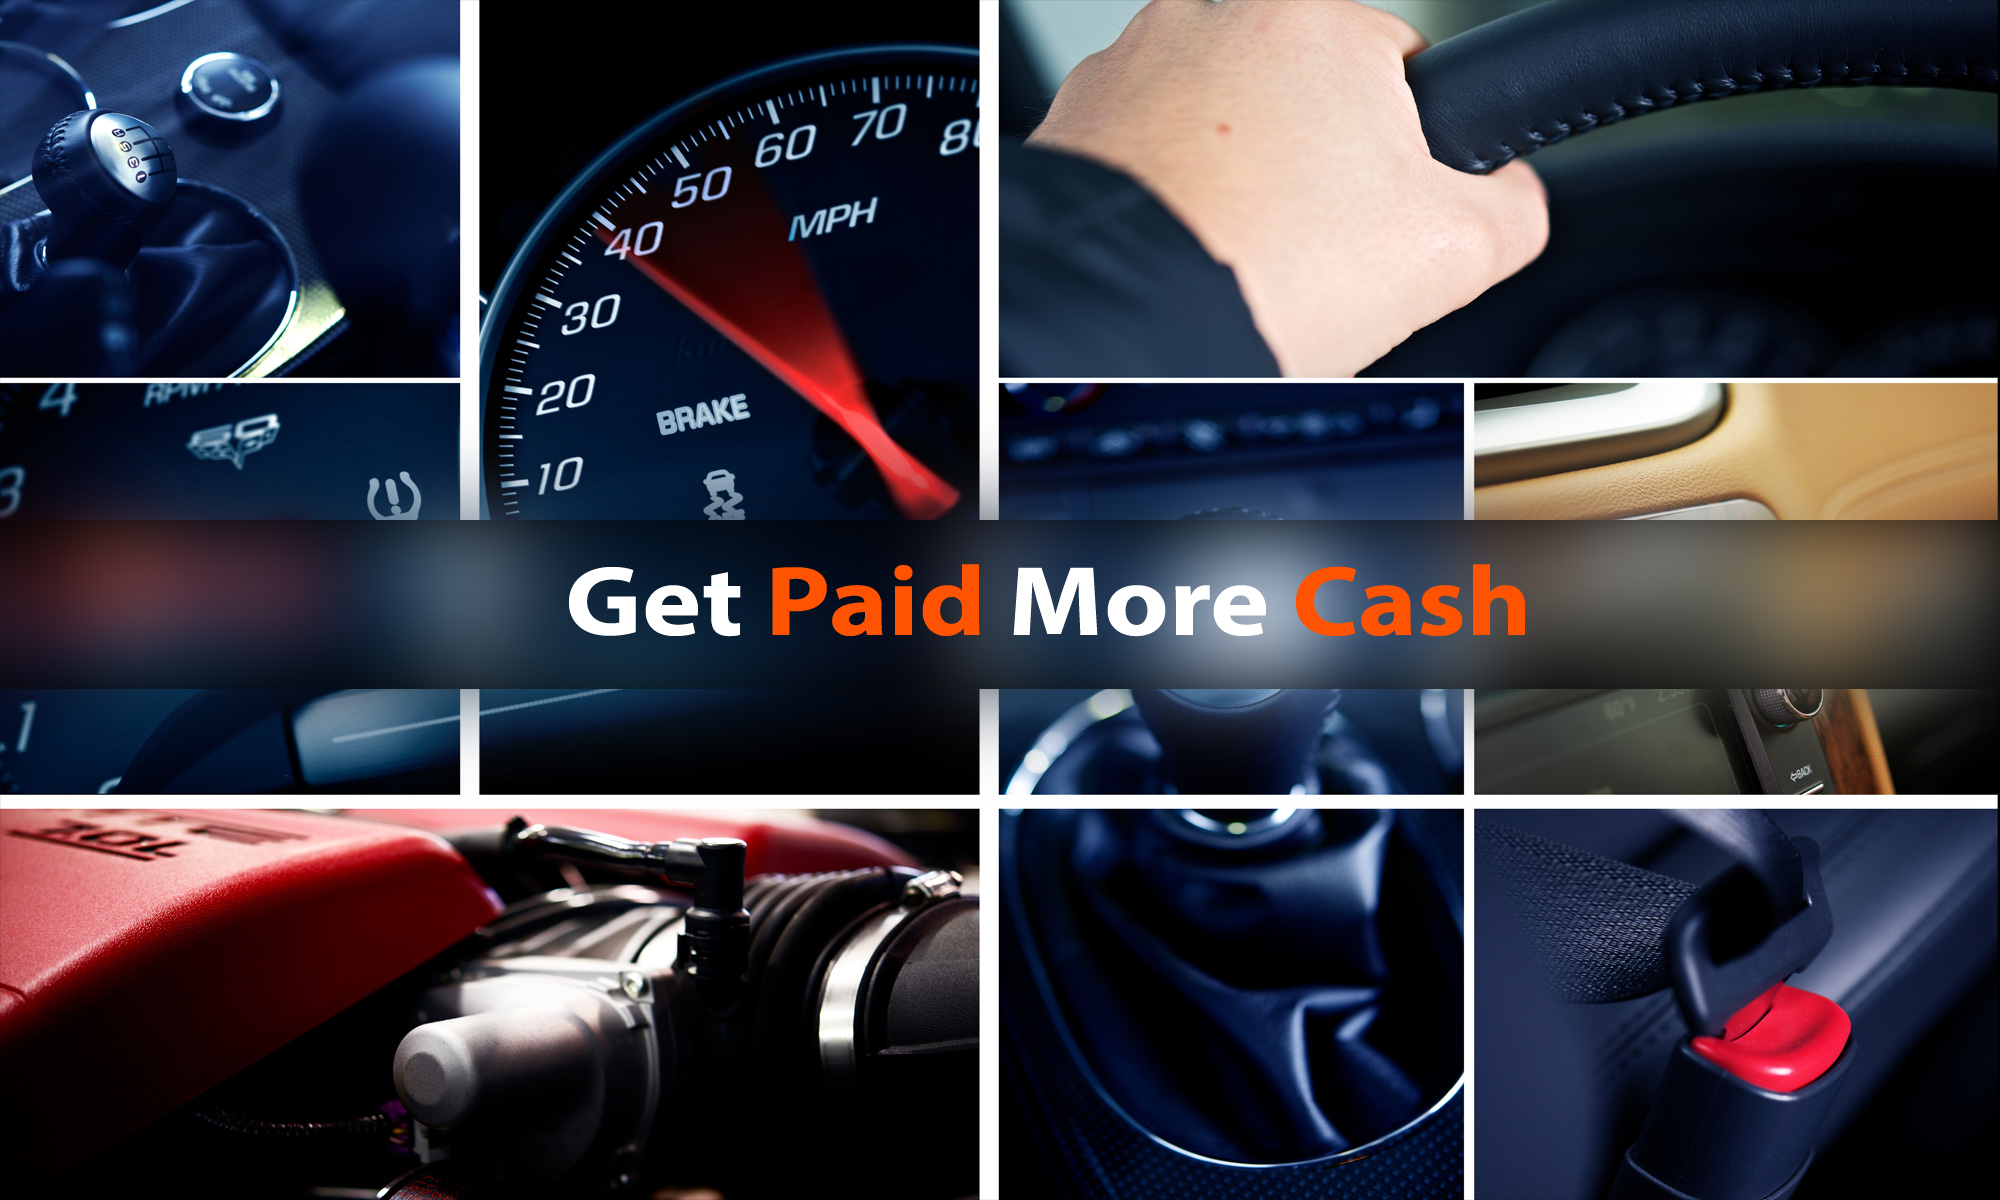 Get Paid More